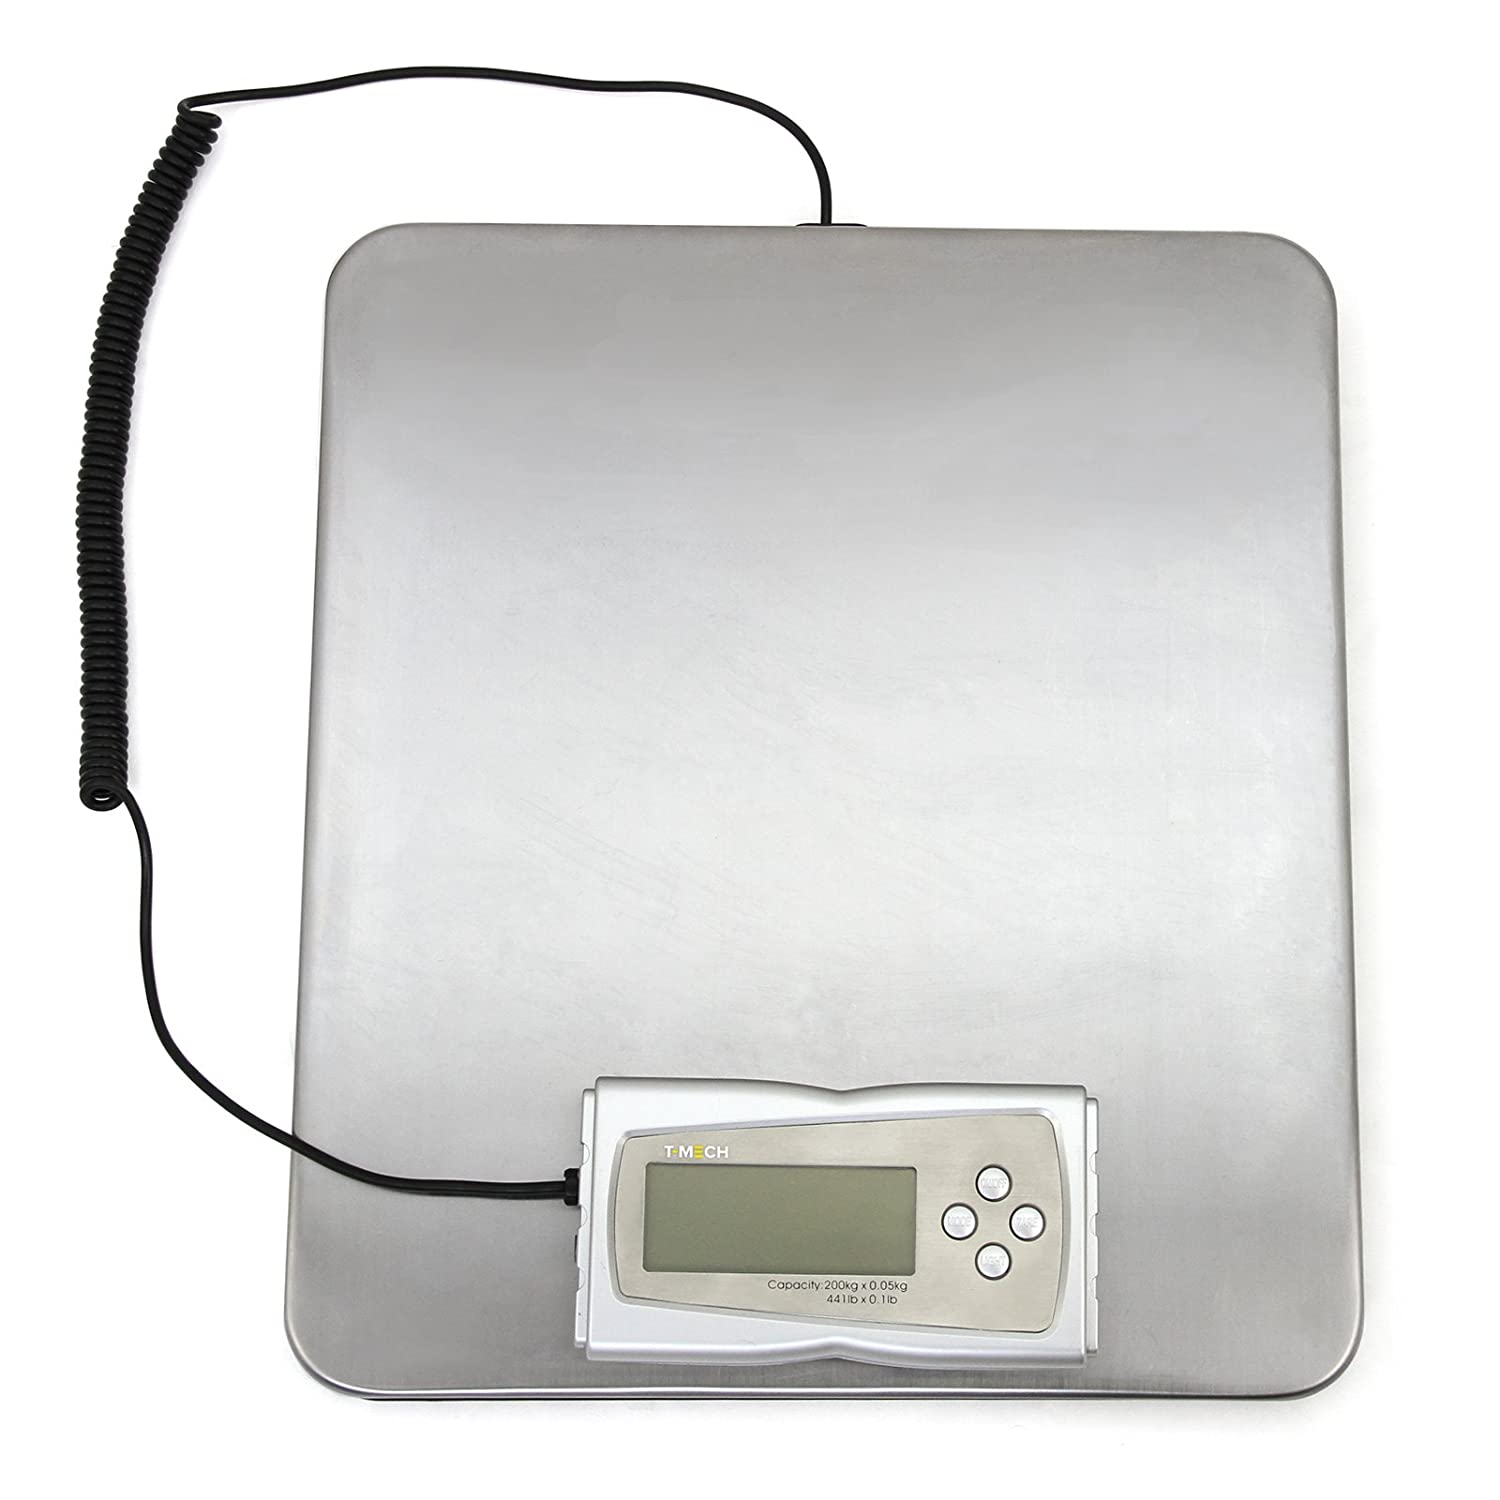 41cm x 36cm Stainless Steel T-Mech Digital Letter /& Parcel Postal Weighing Scales